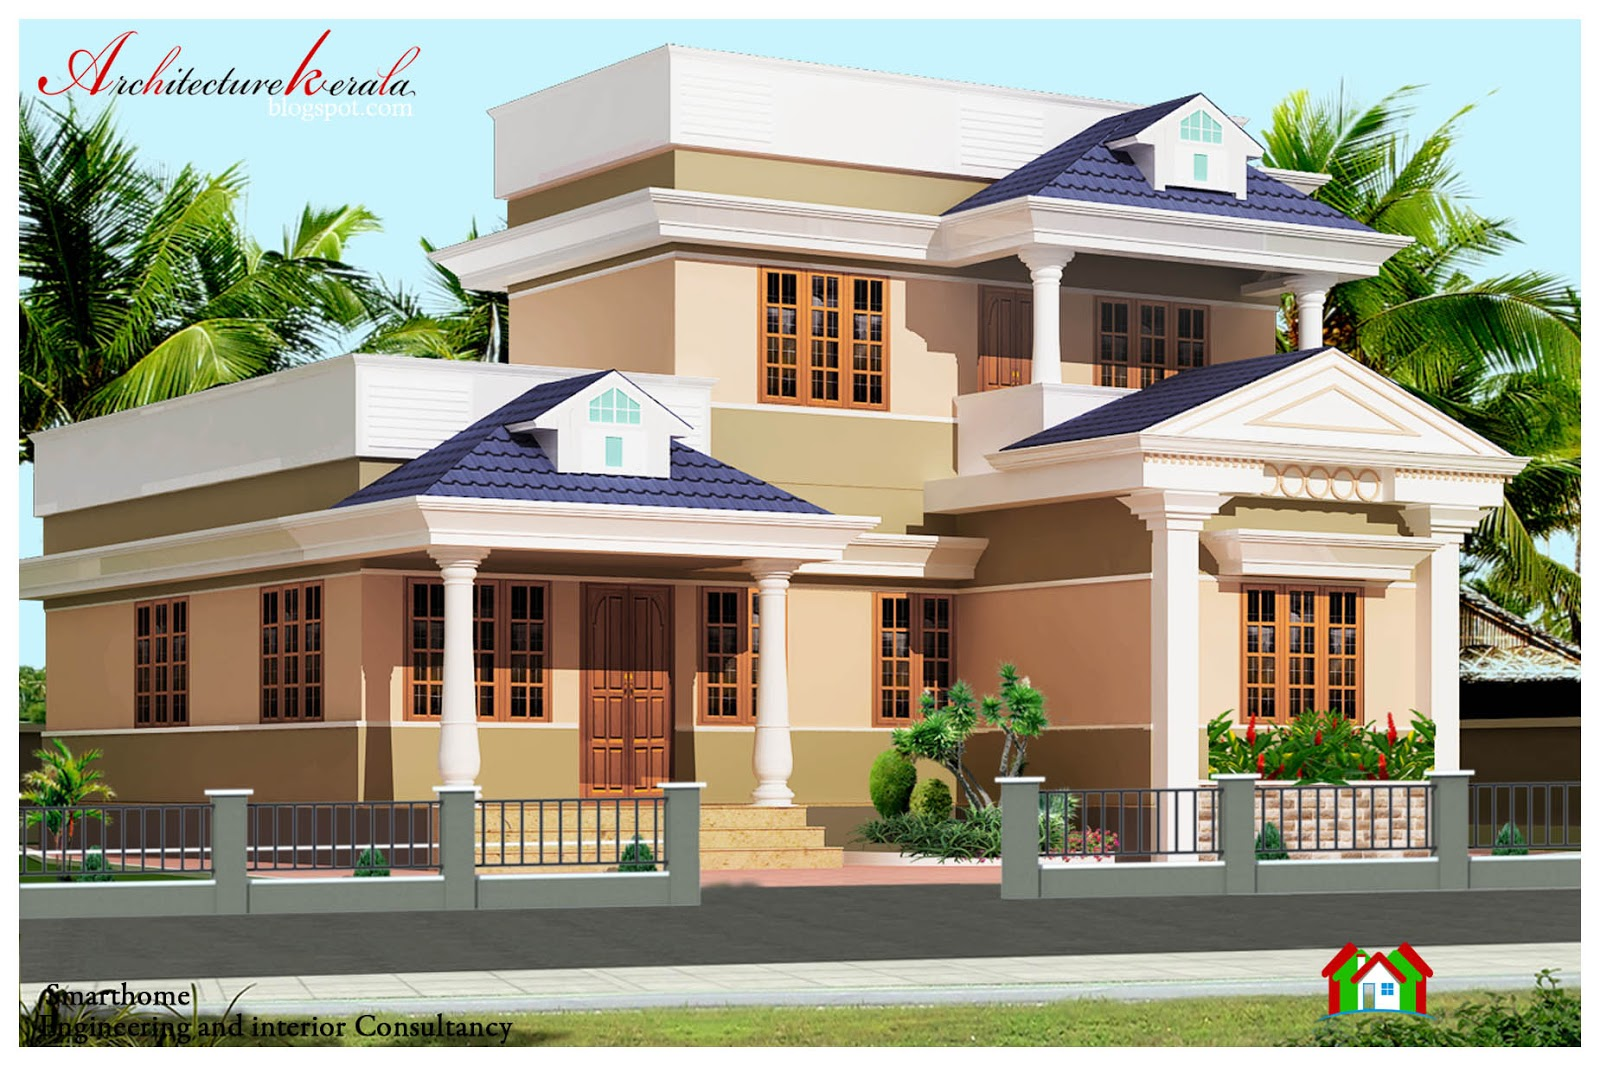 Architecture Kerala  sq ft KERALA STYLE HOUSE PLAN sq ft KERALA STYLE HOUSE PLAN